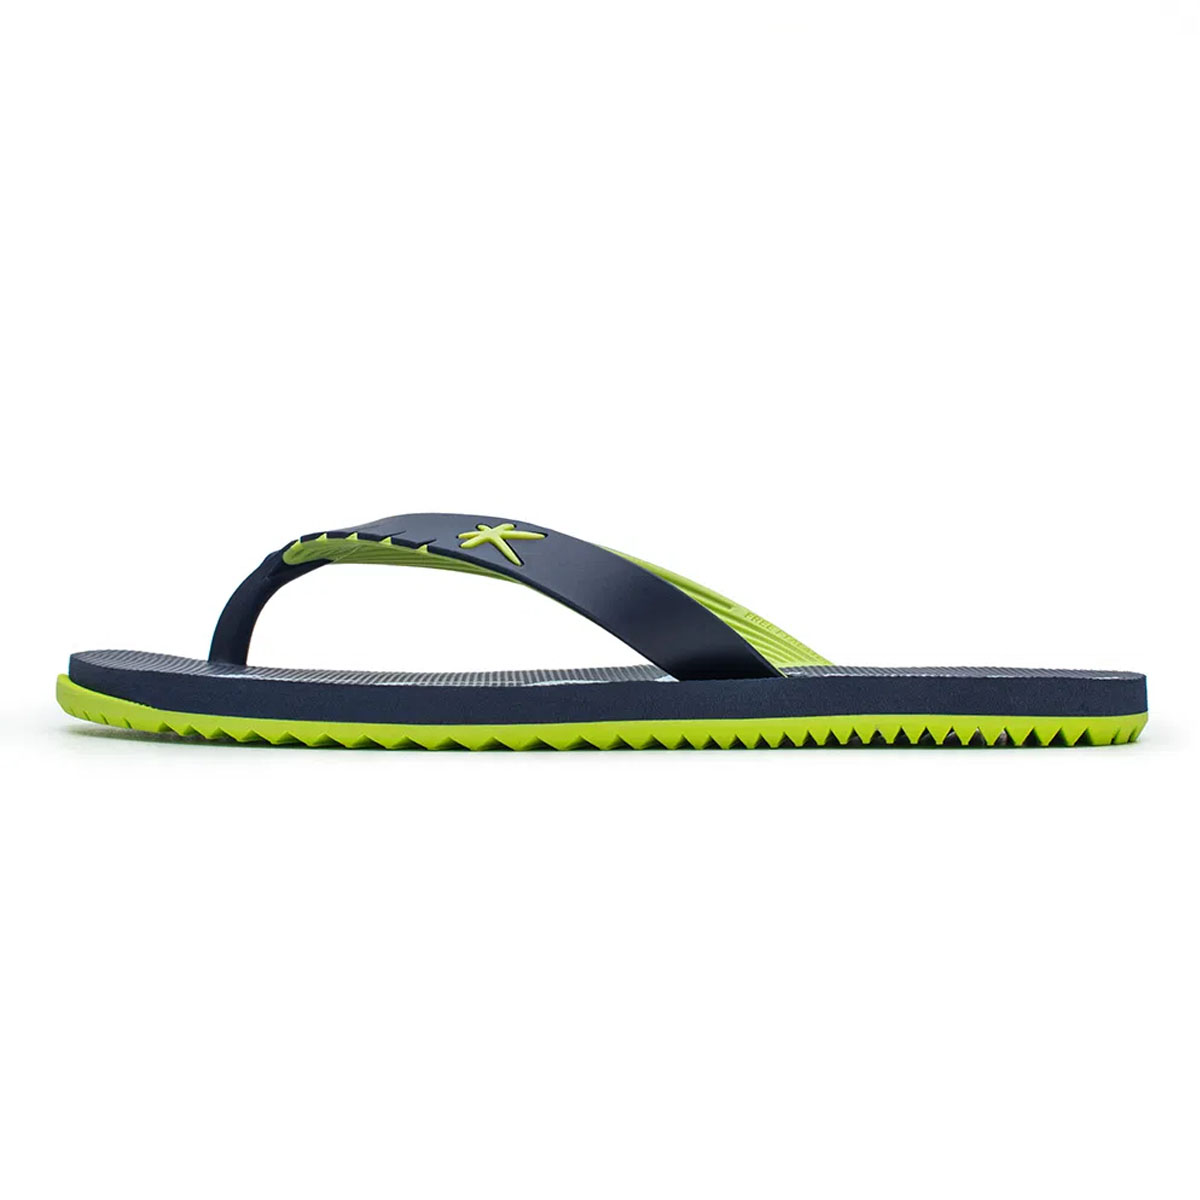 Chinelo Kenner Masculino Red Mixed Verde Neon